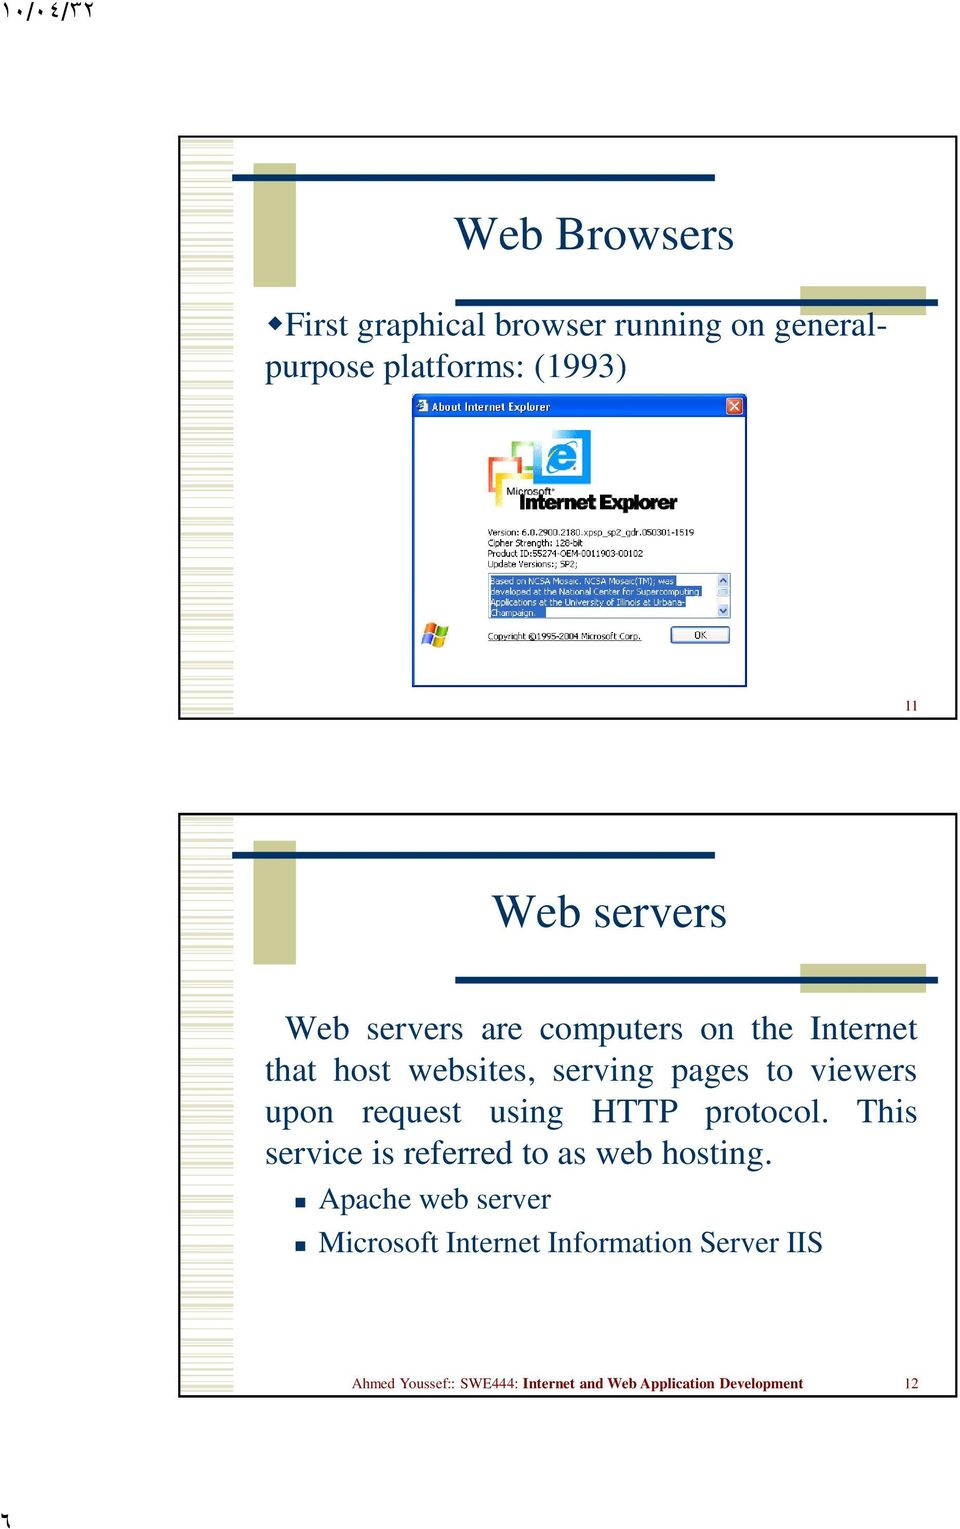 request using HTTP protocol. This service is referred to as web hosting.